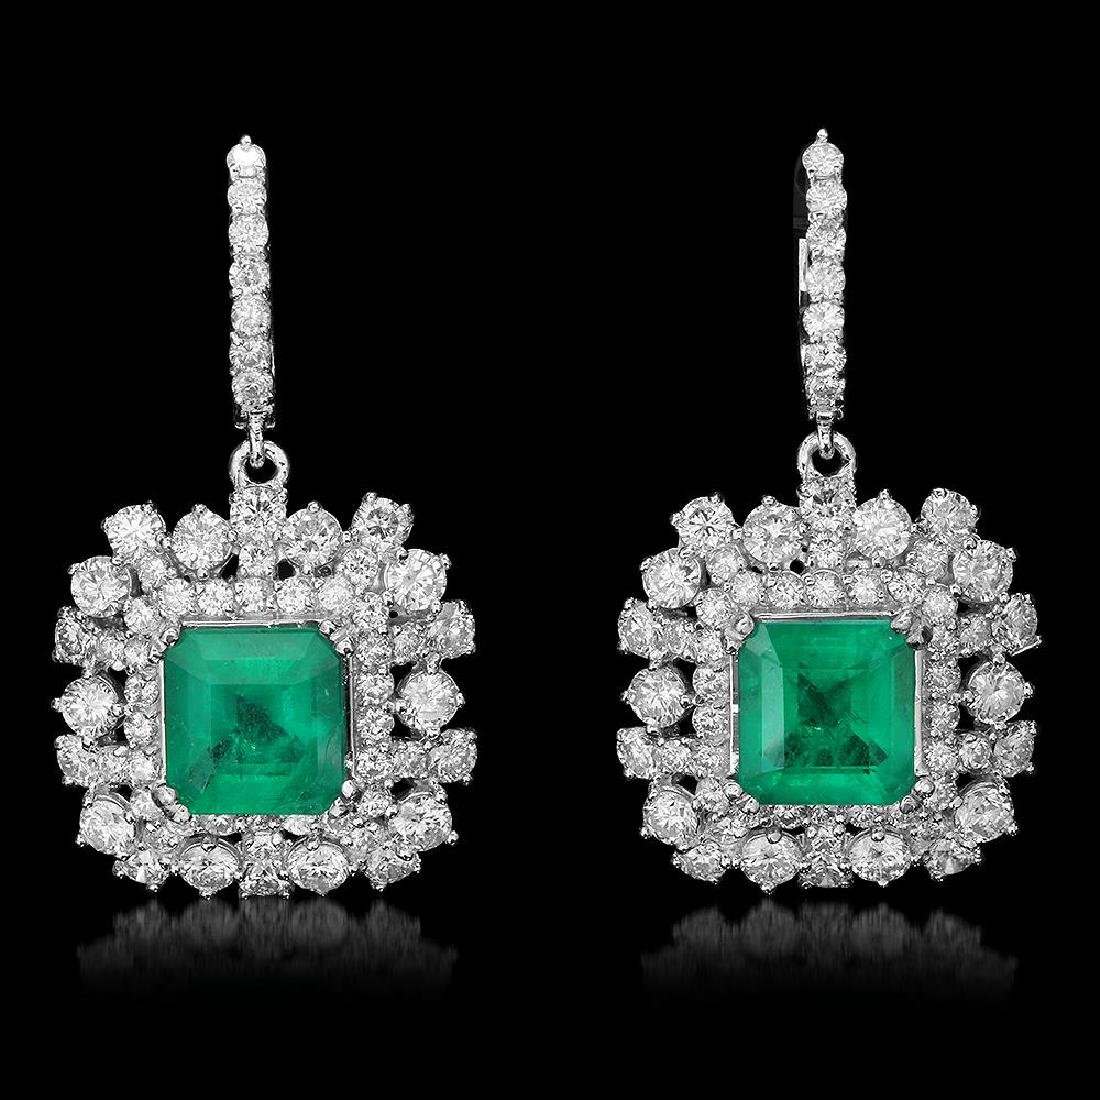 14K Gold 5.68ct Emerald 5.75ct Diamond Earrings